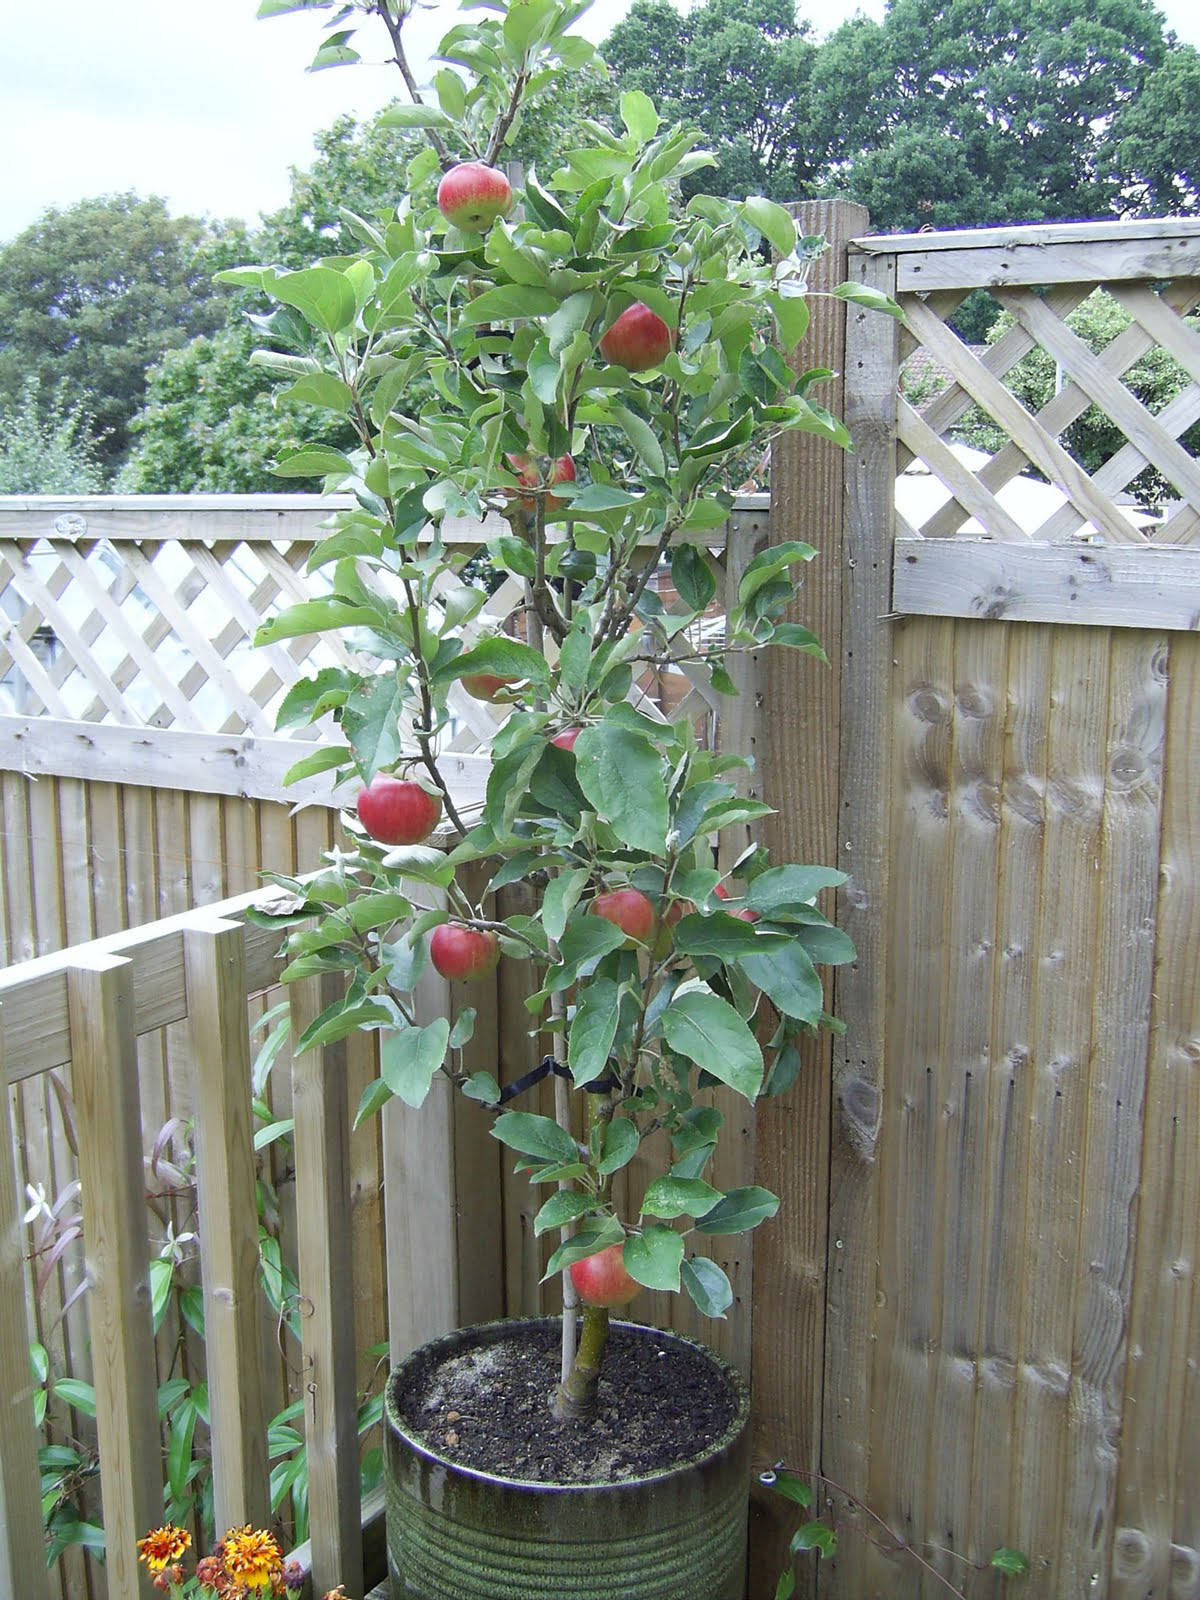 Feeling fruity. There's a fruit tree for every garden ...